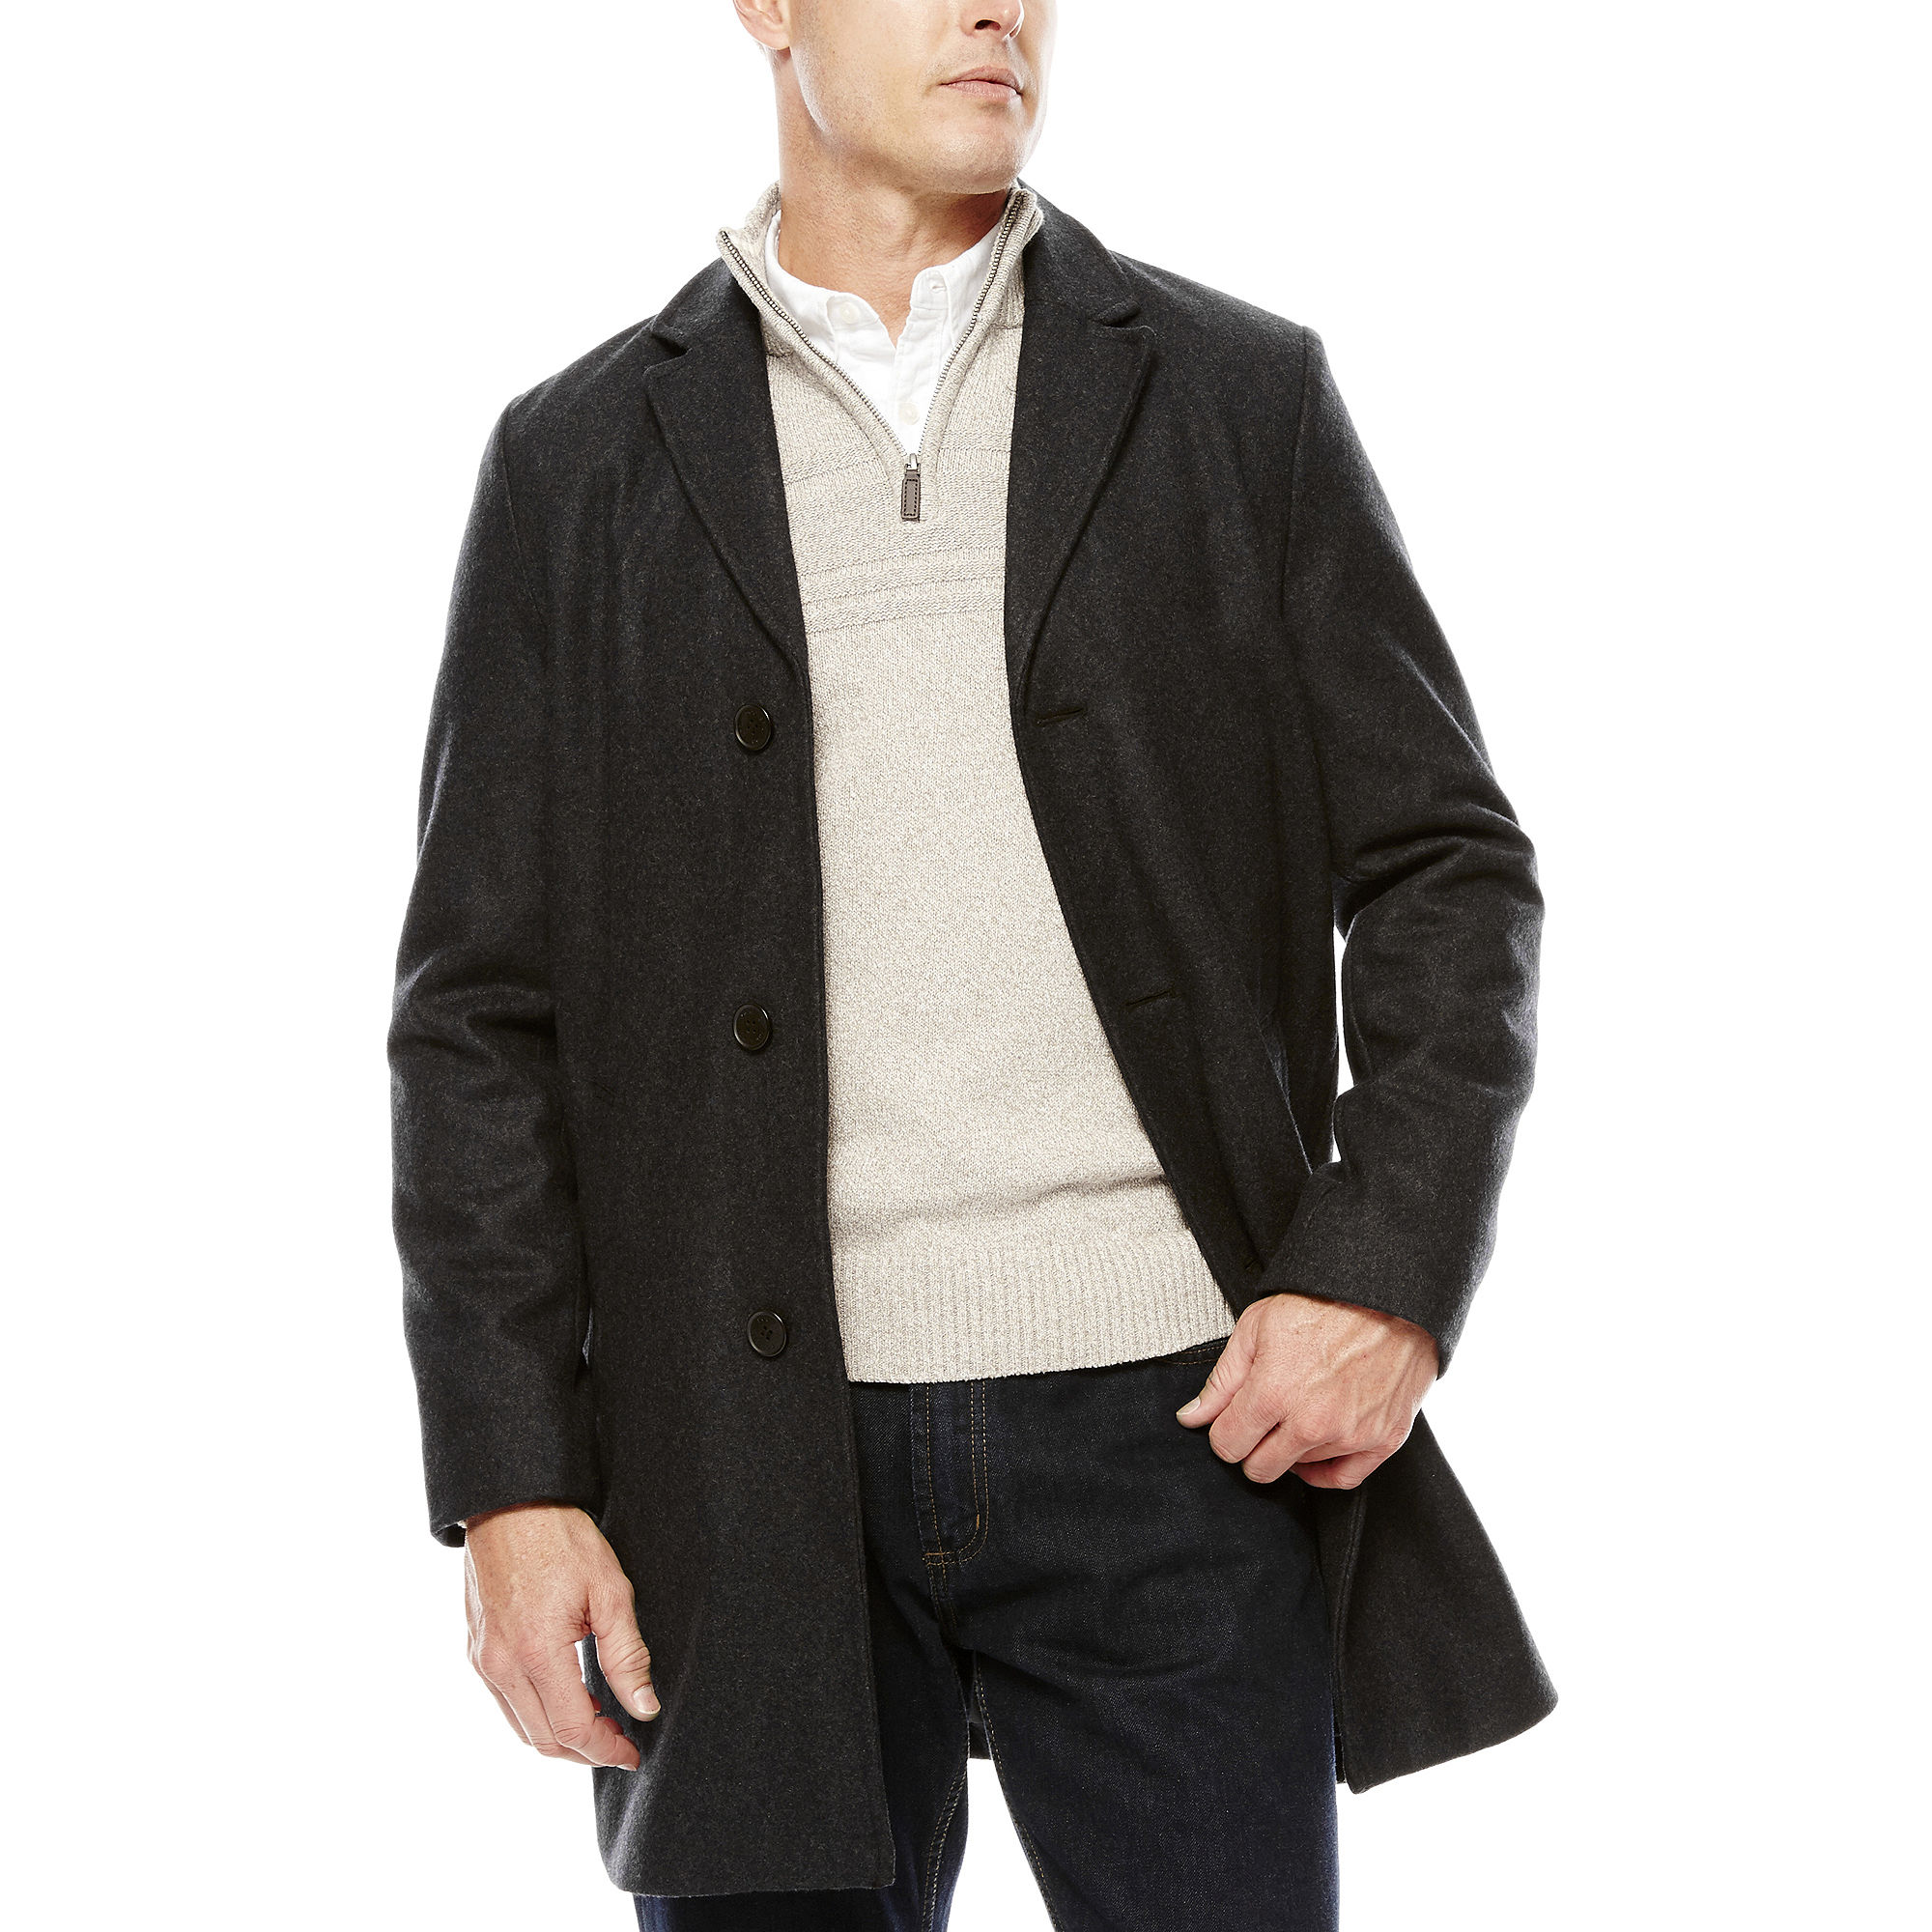 Dockers Wool-Blend Top Coat